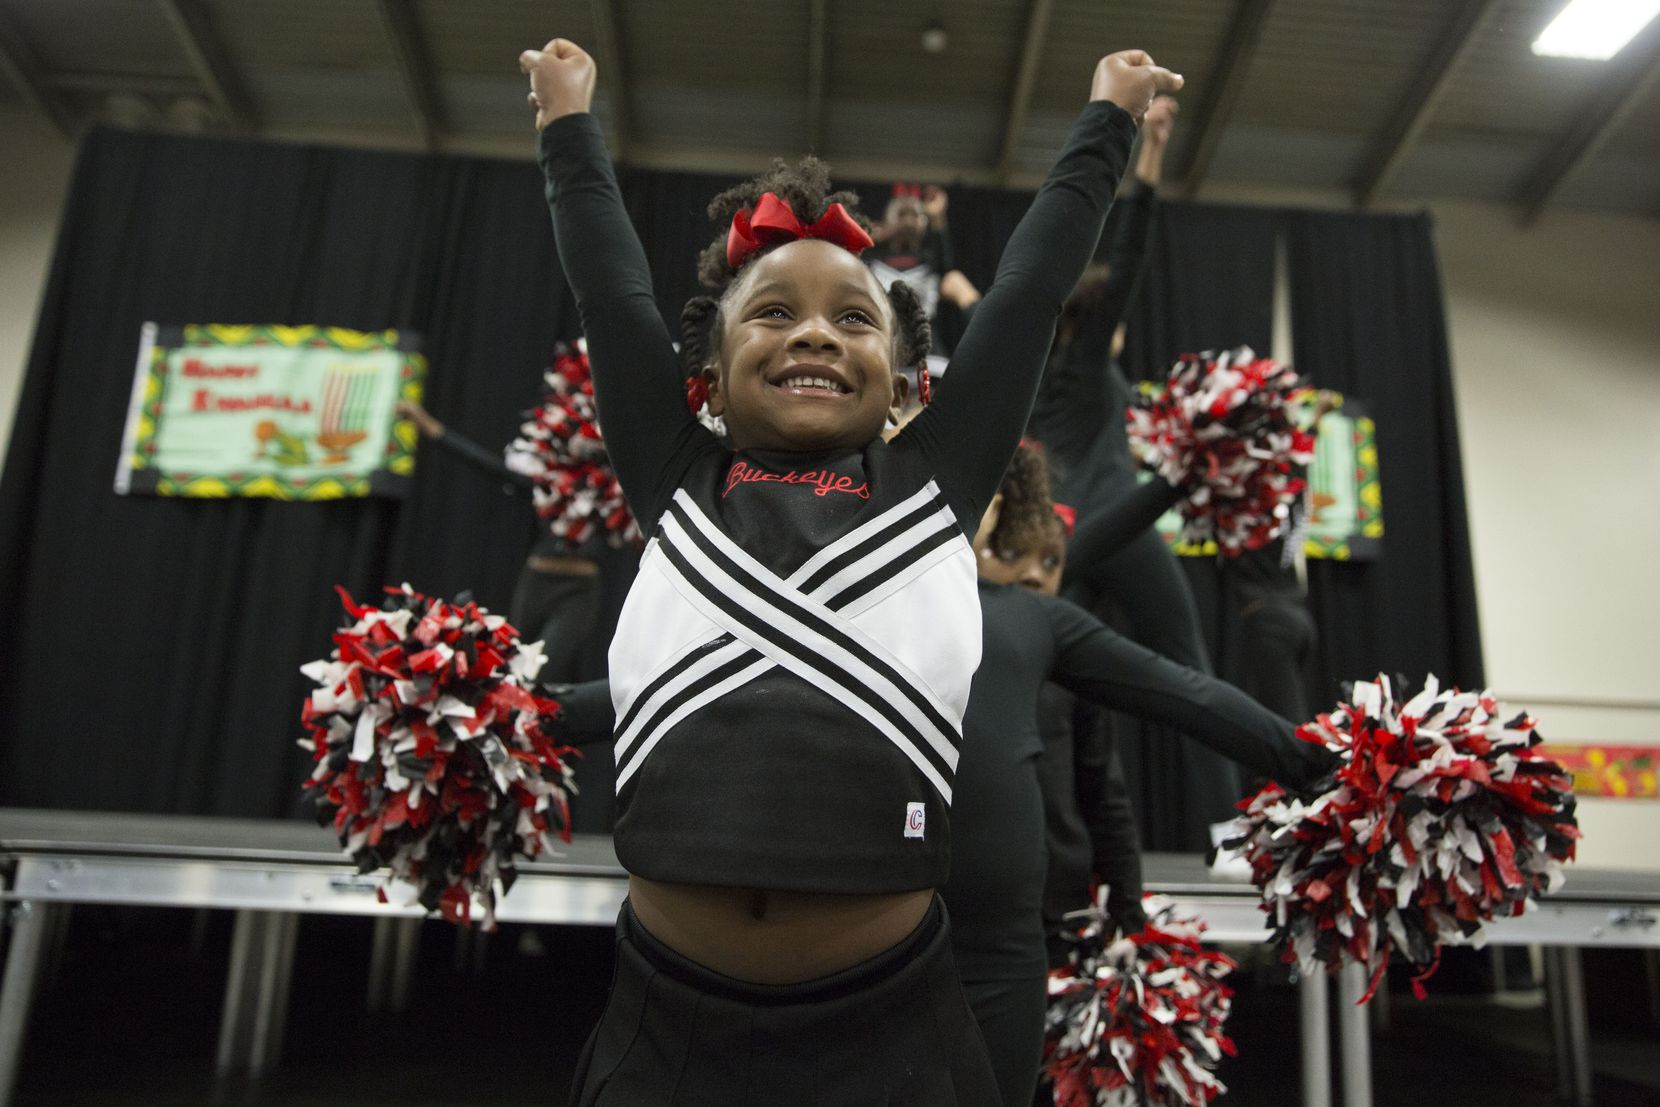 Cheerleaders perform at KwanzaaFest in 2017. This year, the two-day cultural festival will be held Dec. 14-15 in Fair Park.